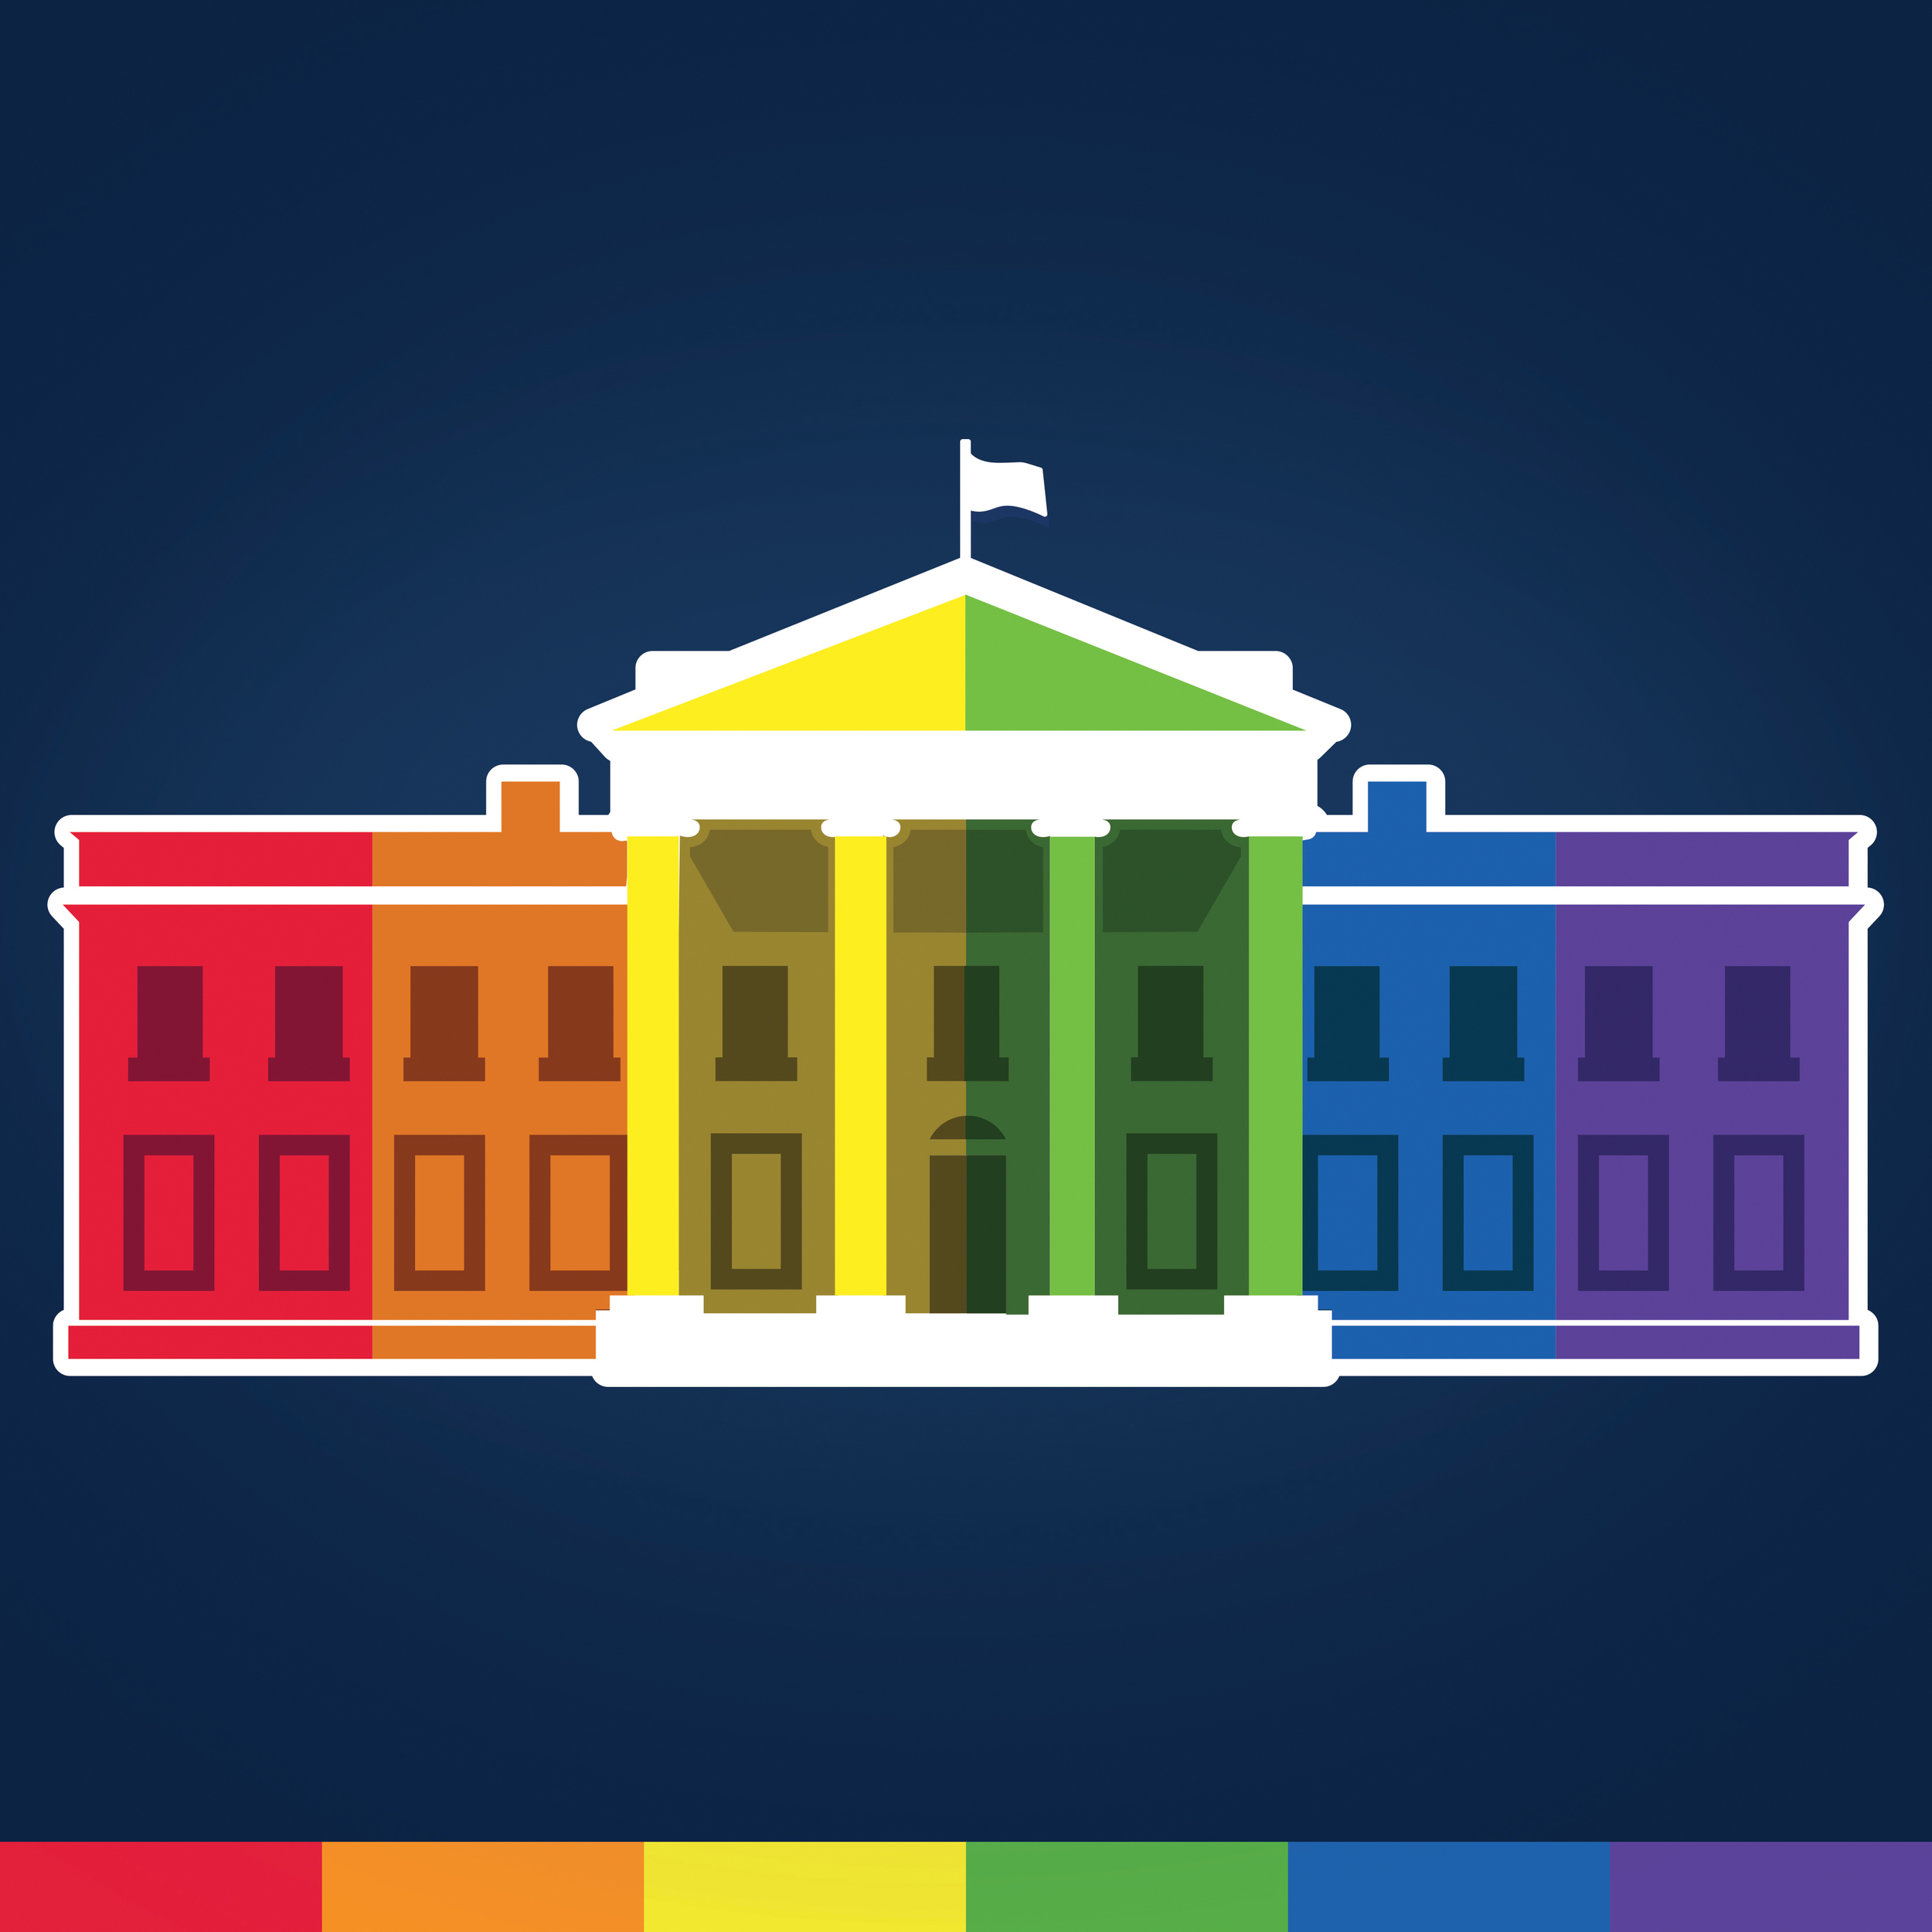 #LoveWins Campaign - Obama White HouseIn 2015, Ashleigh Axios created the White House iconography celebrating the historic Supreme Court ruling legalizing same-sex marriage across the US.